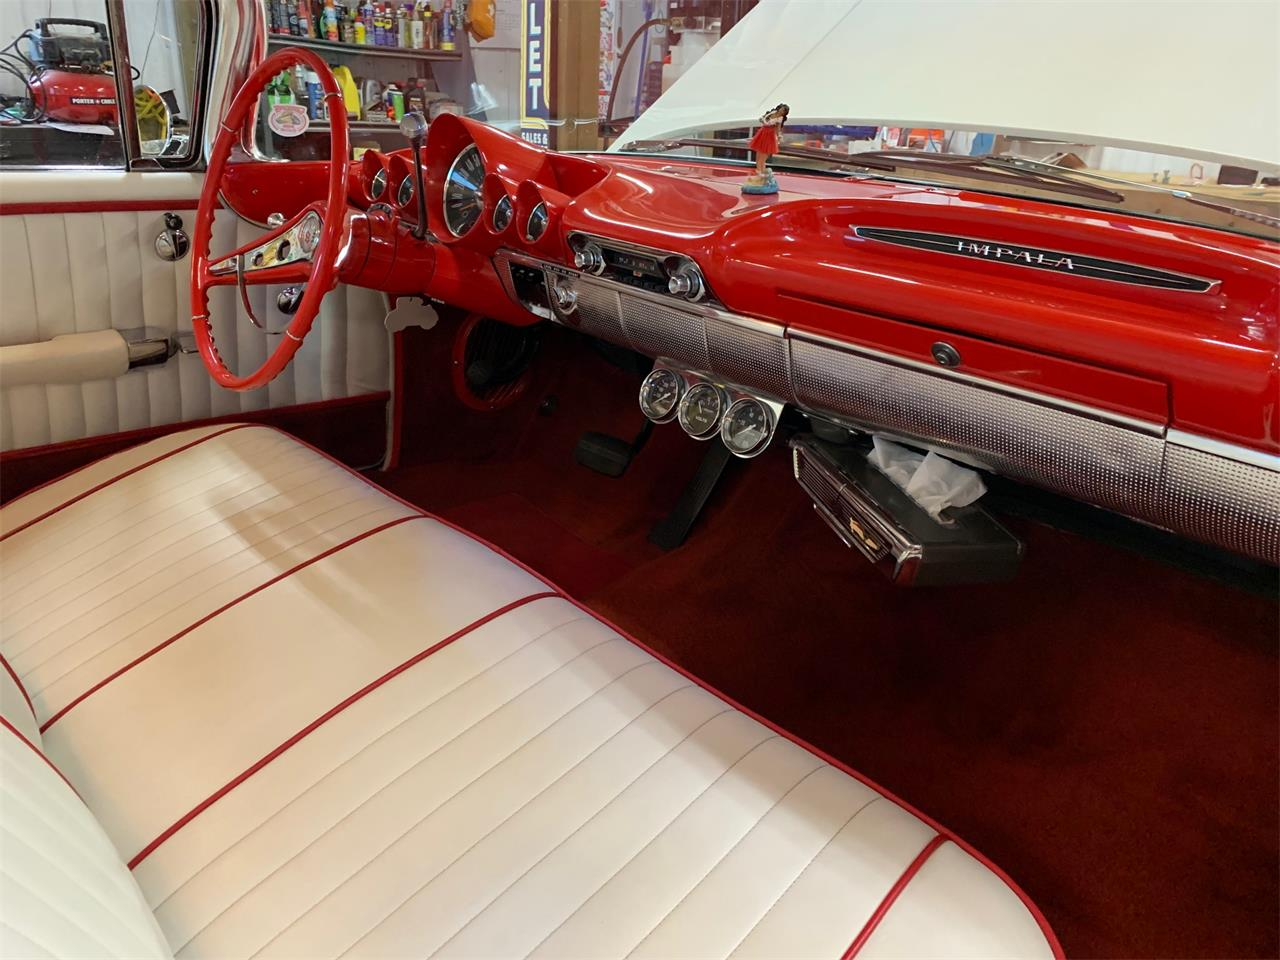 Large Picture of Classic 1960 Chevrolet Impala - $47,000.00 Offered by a Private Seller - QOLH